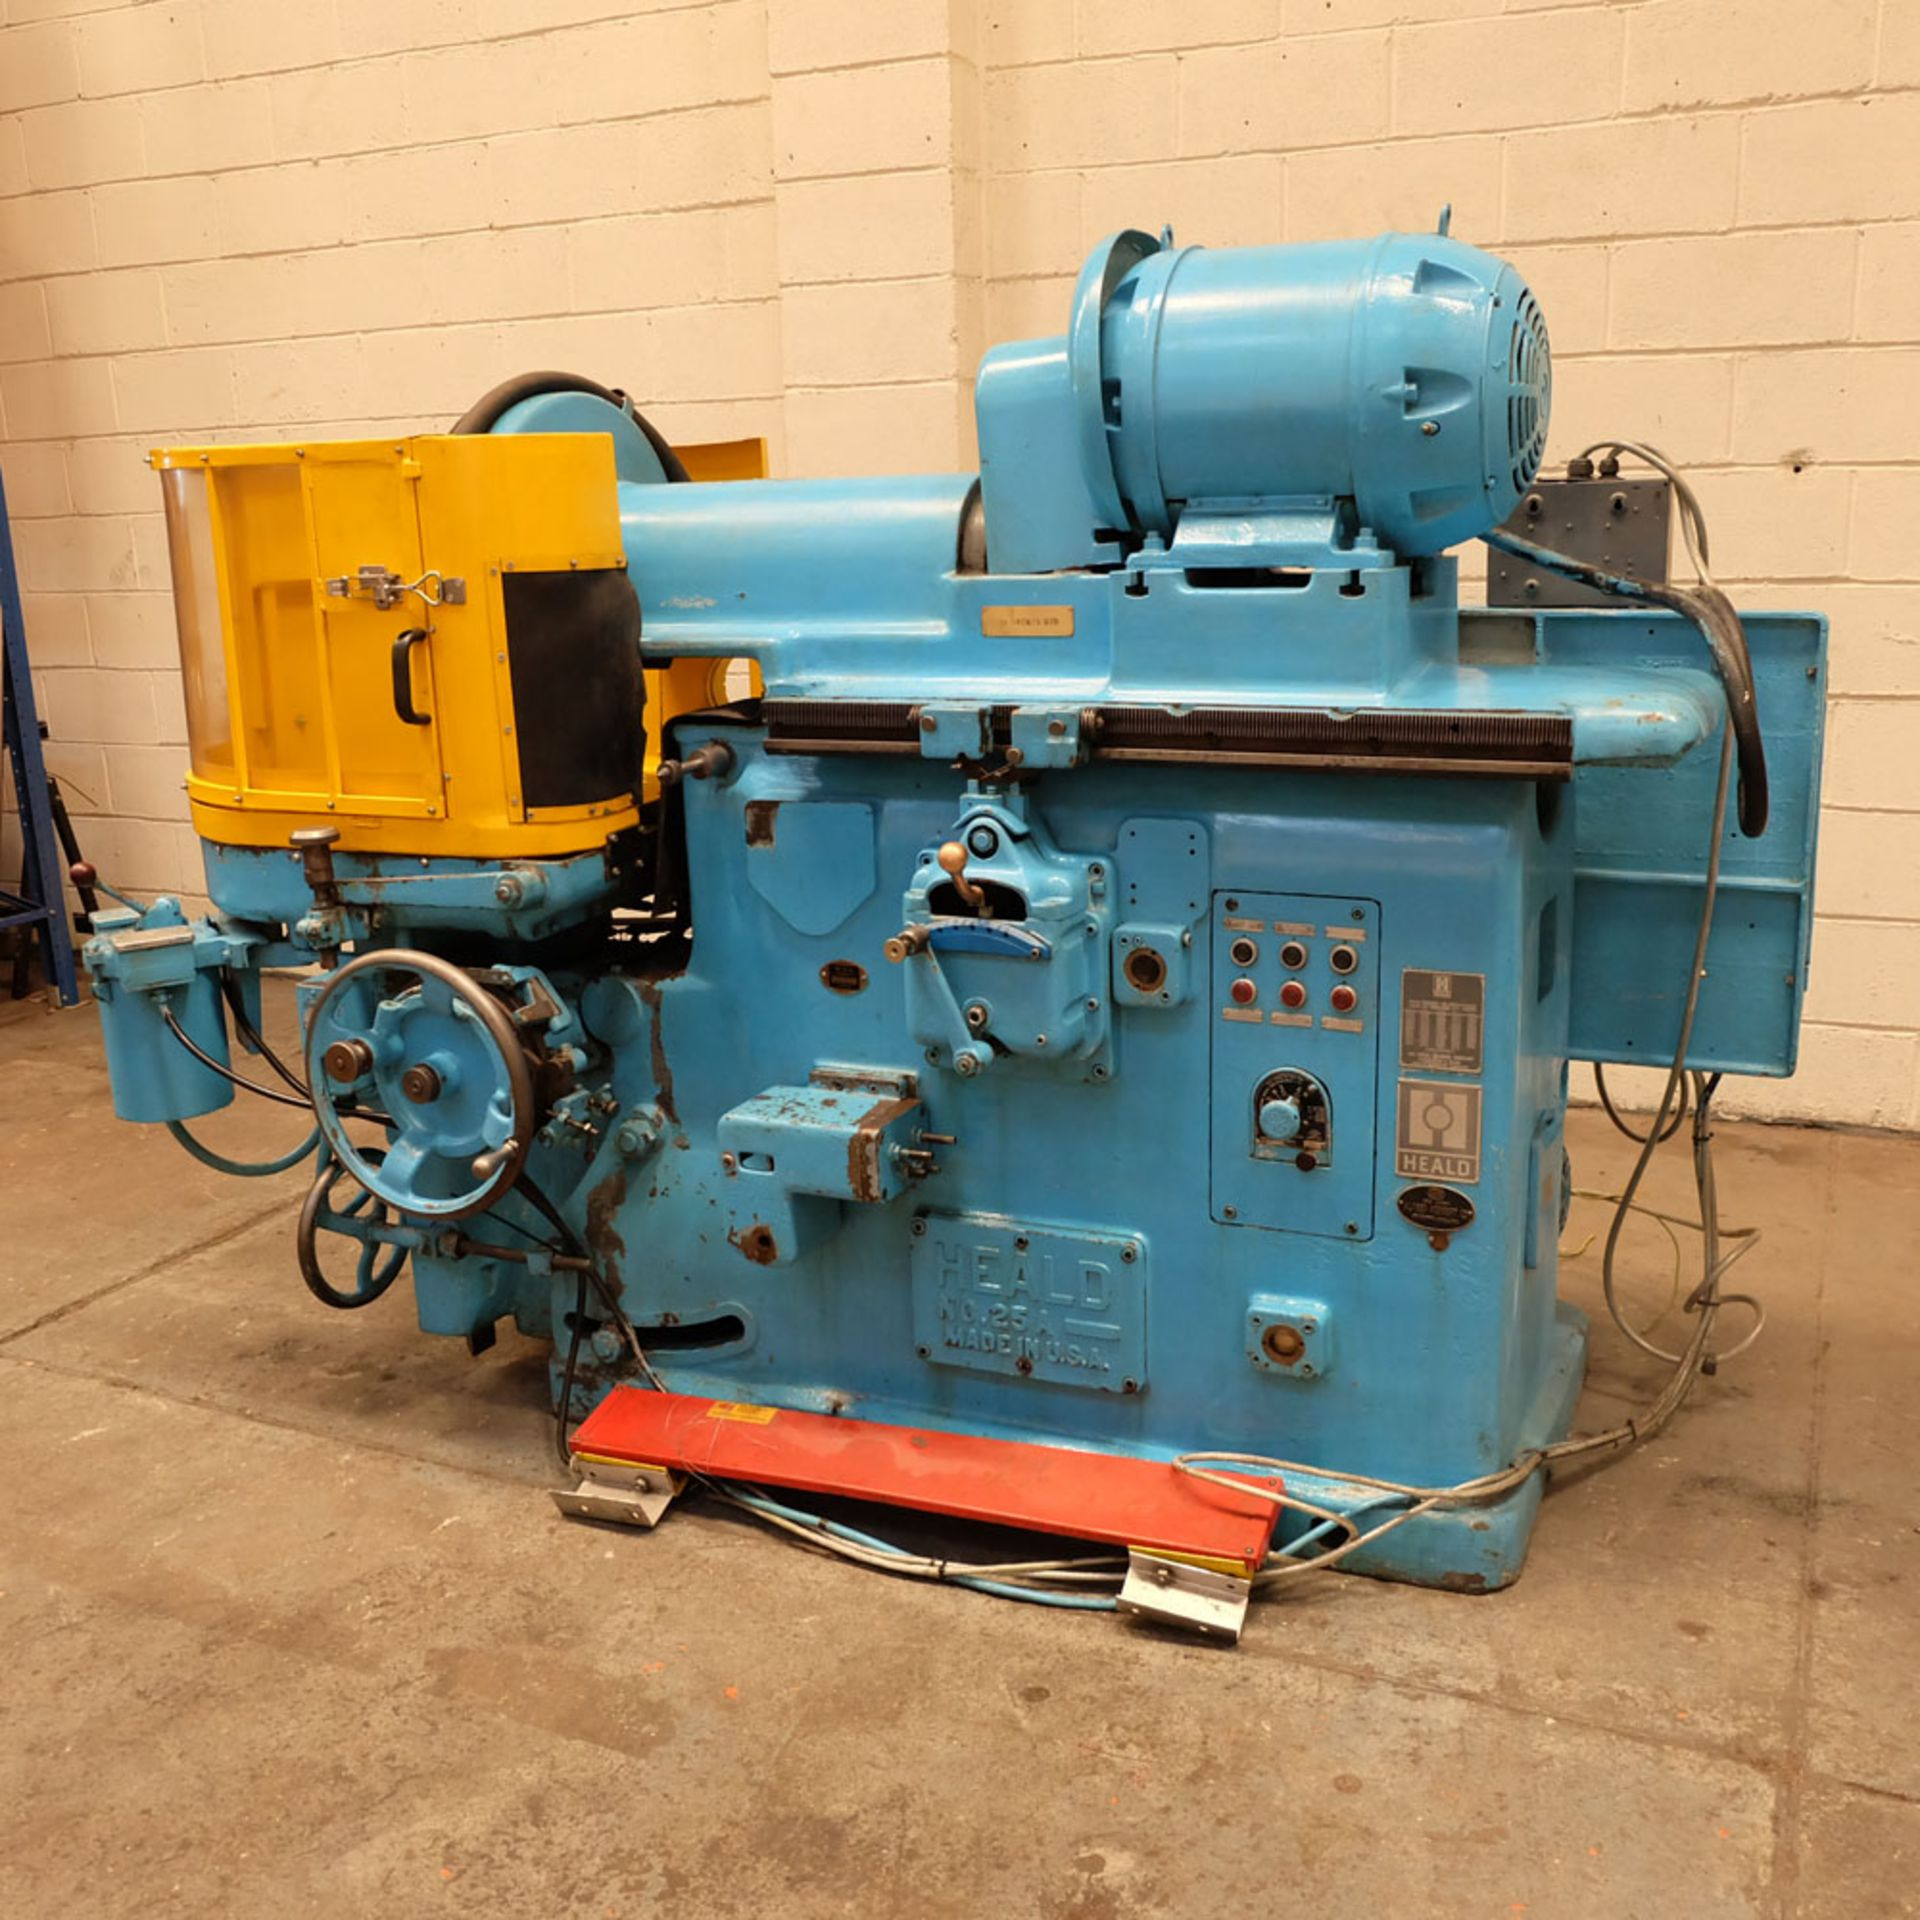 """Heald No.25A Rotary Ring Grinder. Grinding Wheel Size 18"""" Diameter. - Image 2 of 12"""